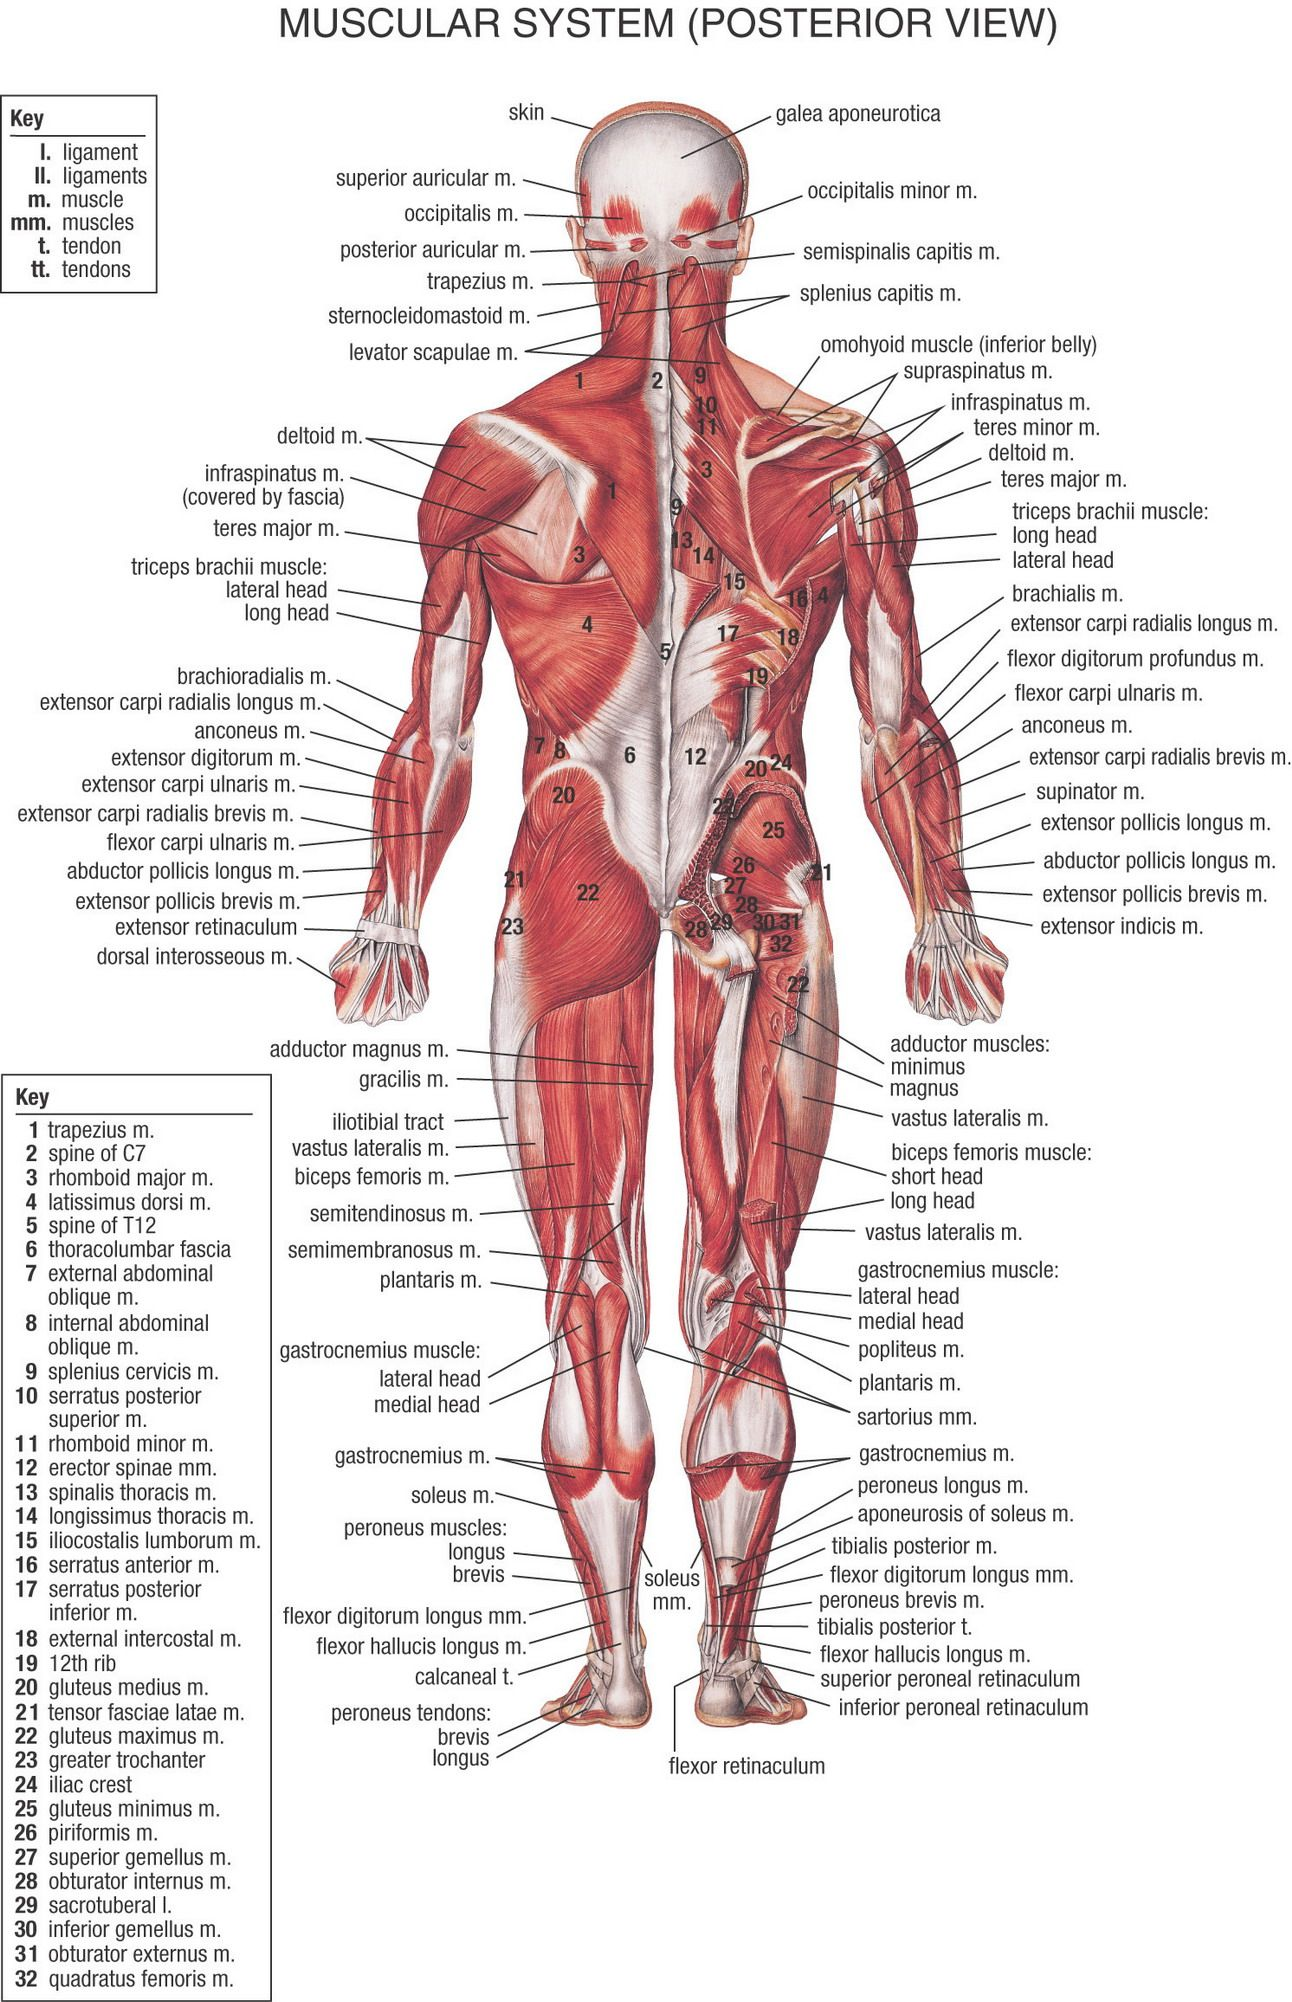 Muscular System Posterior View